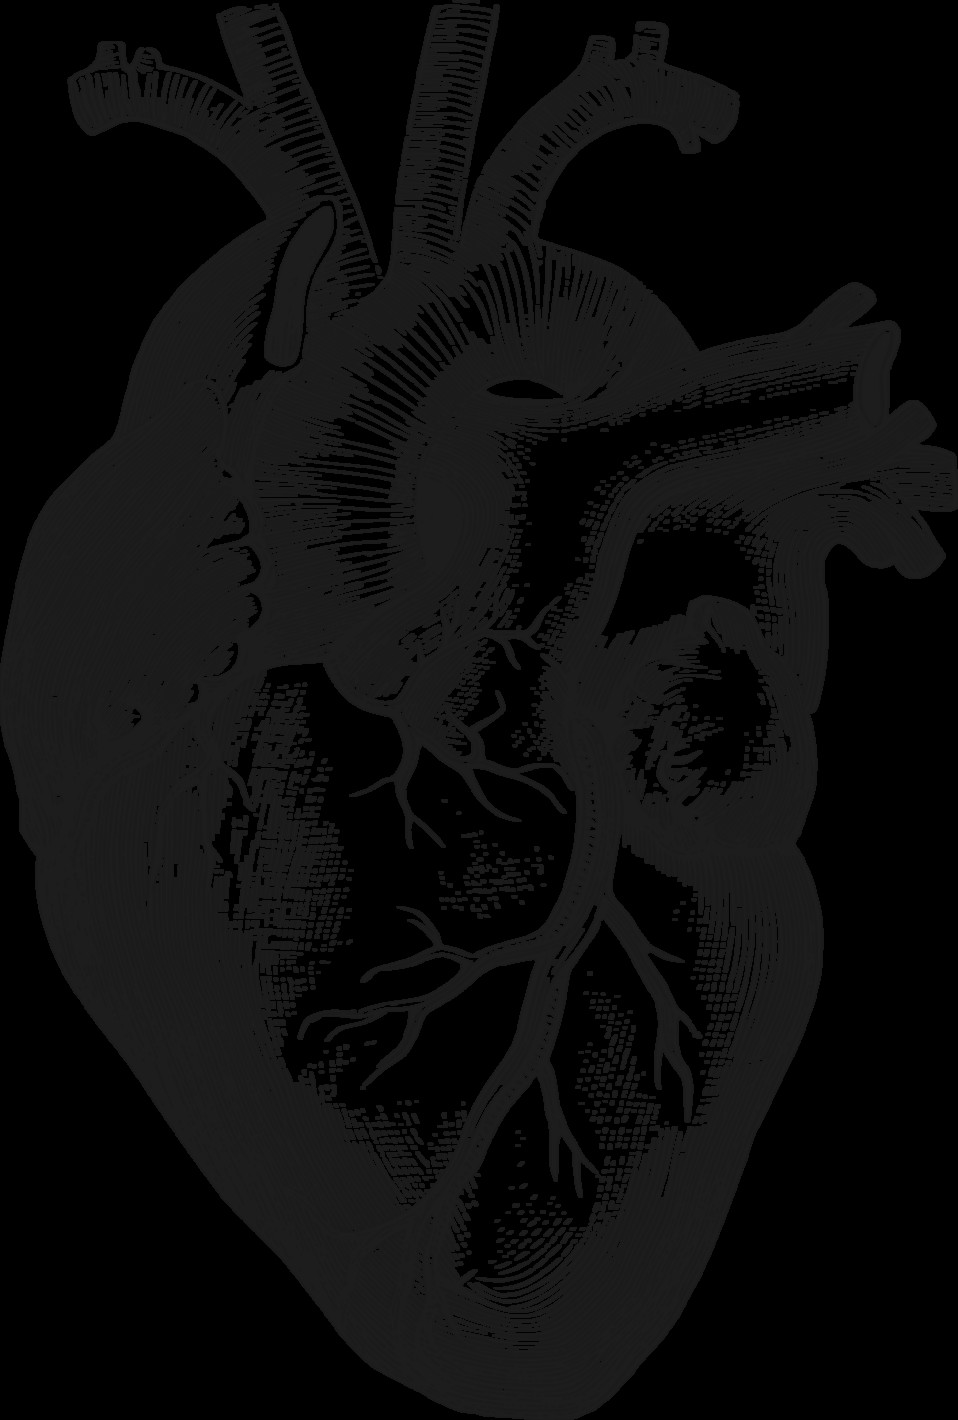 anatomical heart anatomical heart drawing heart images body painting collage body art